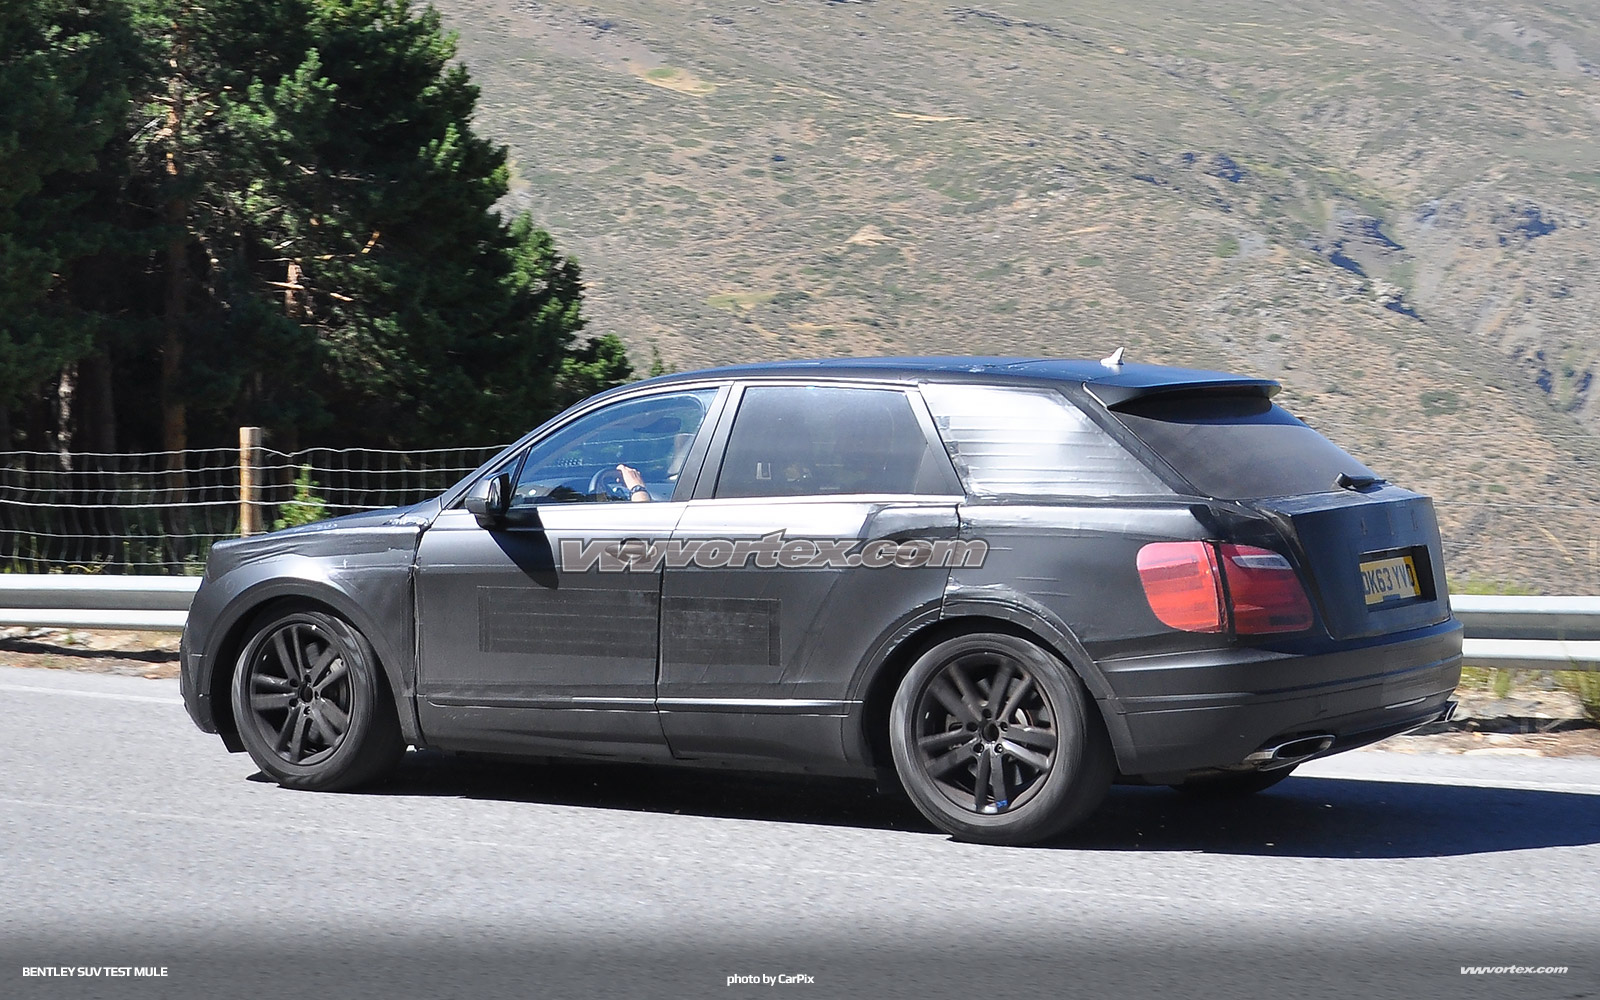 bentley-suv-mule-3-367